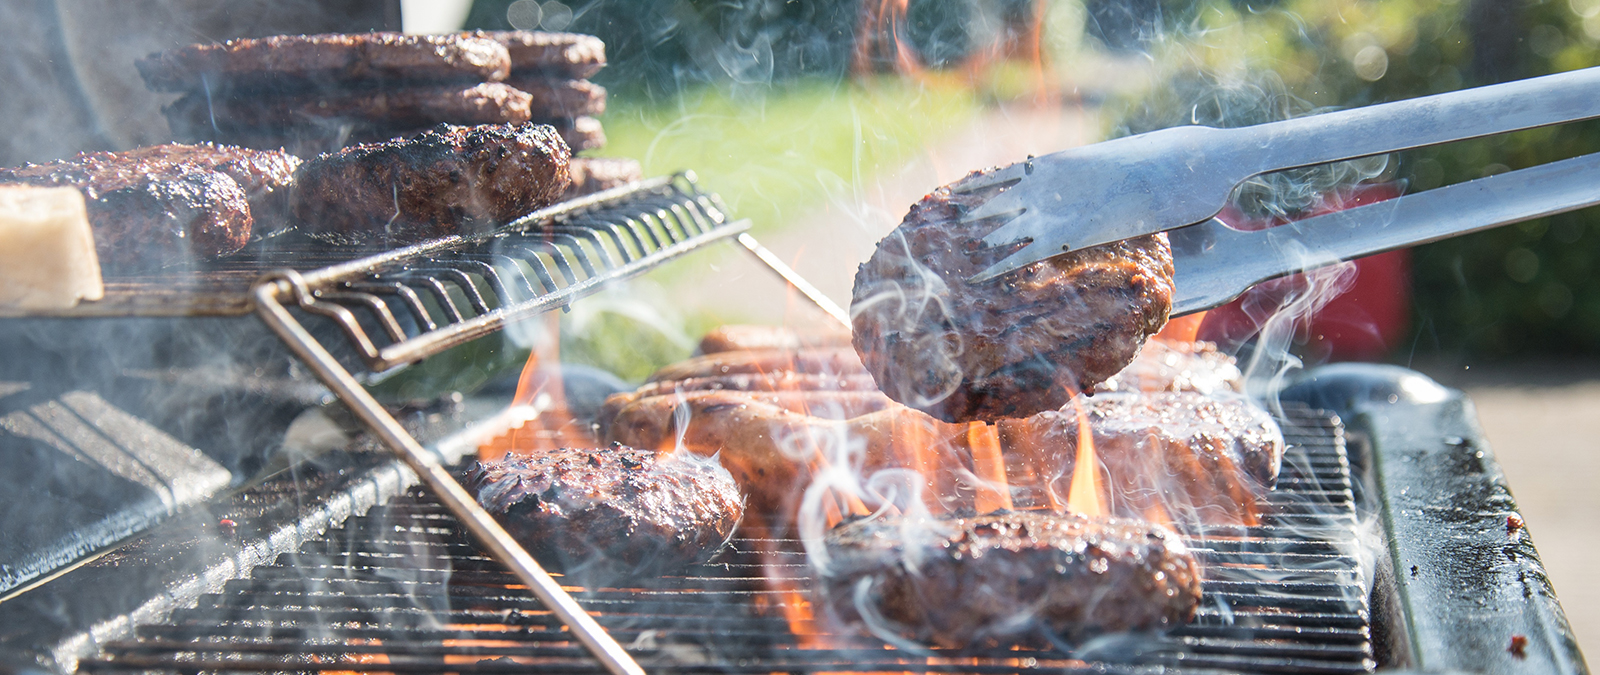 How to Clean and Maintain Your Barbecue